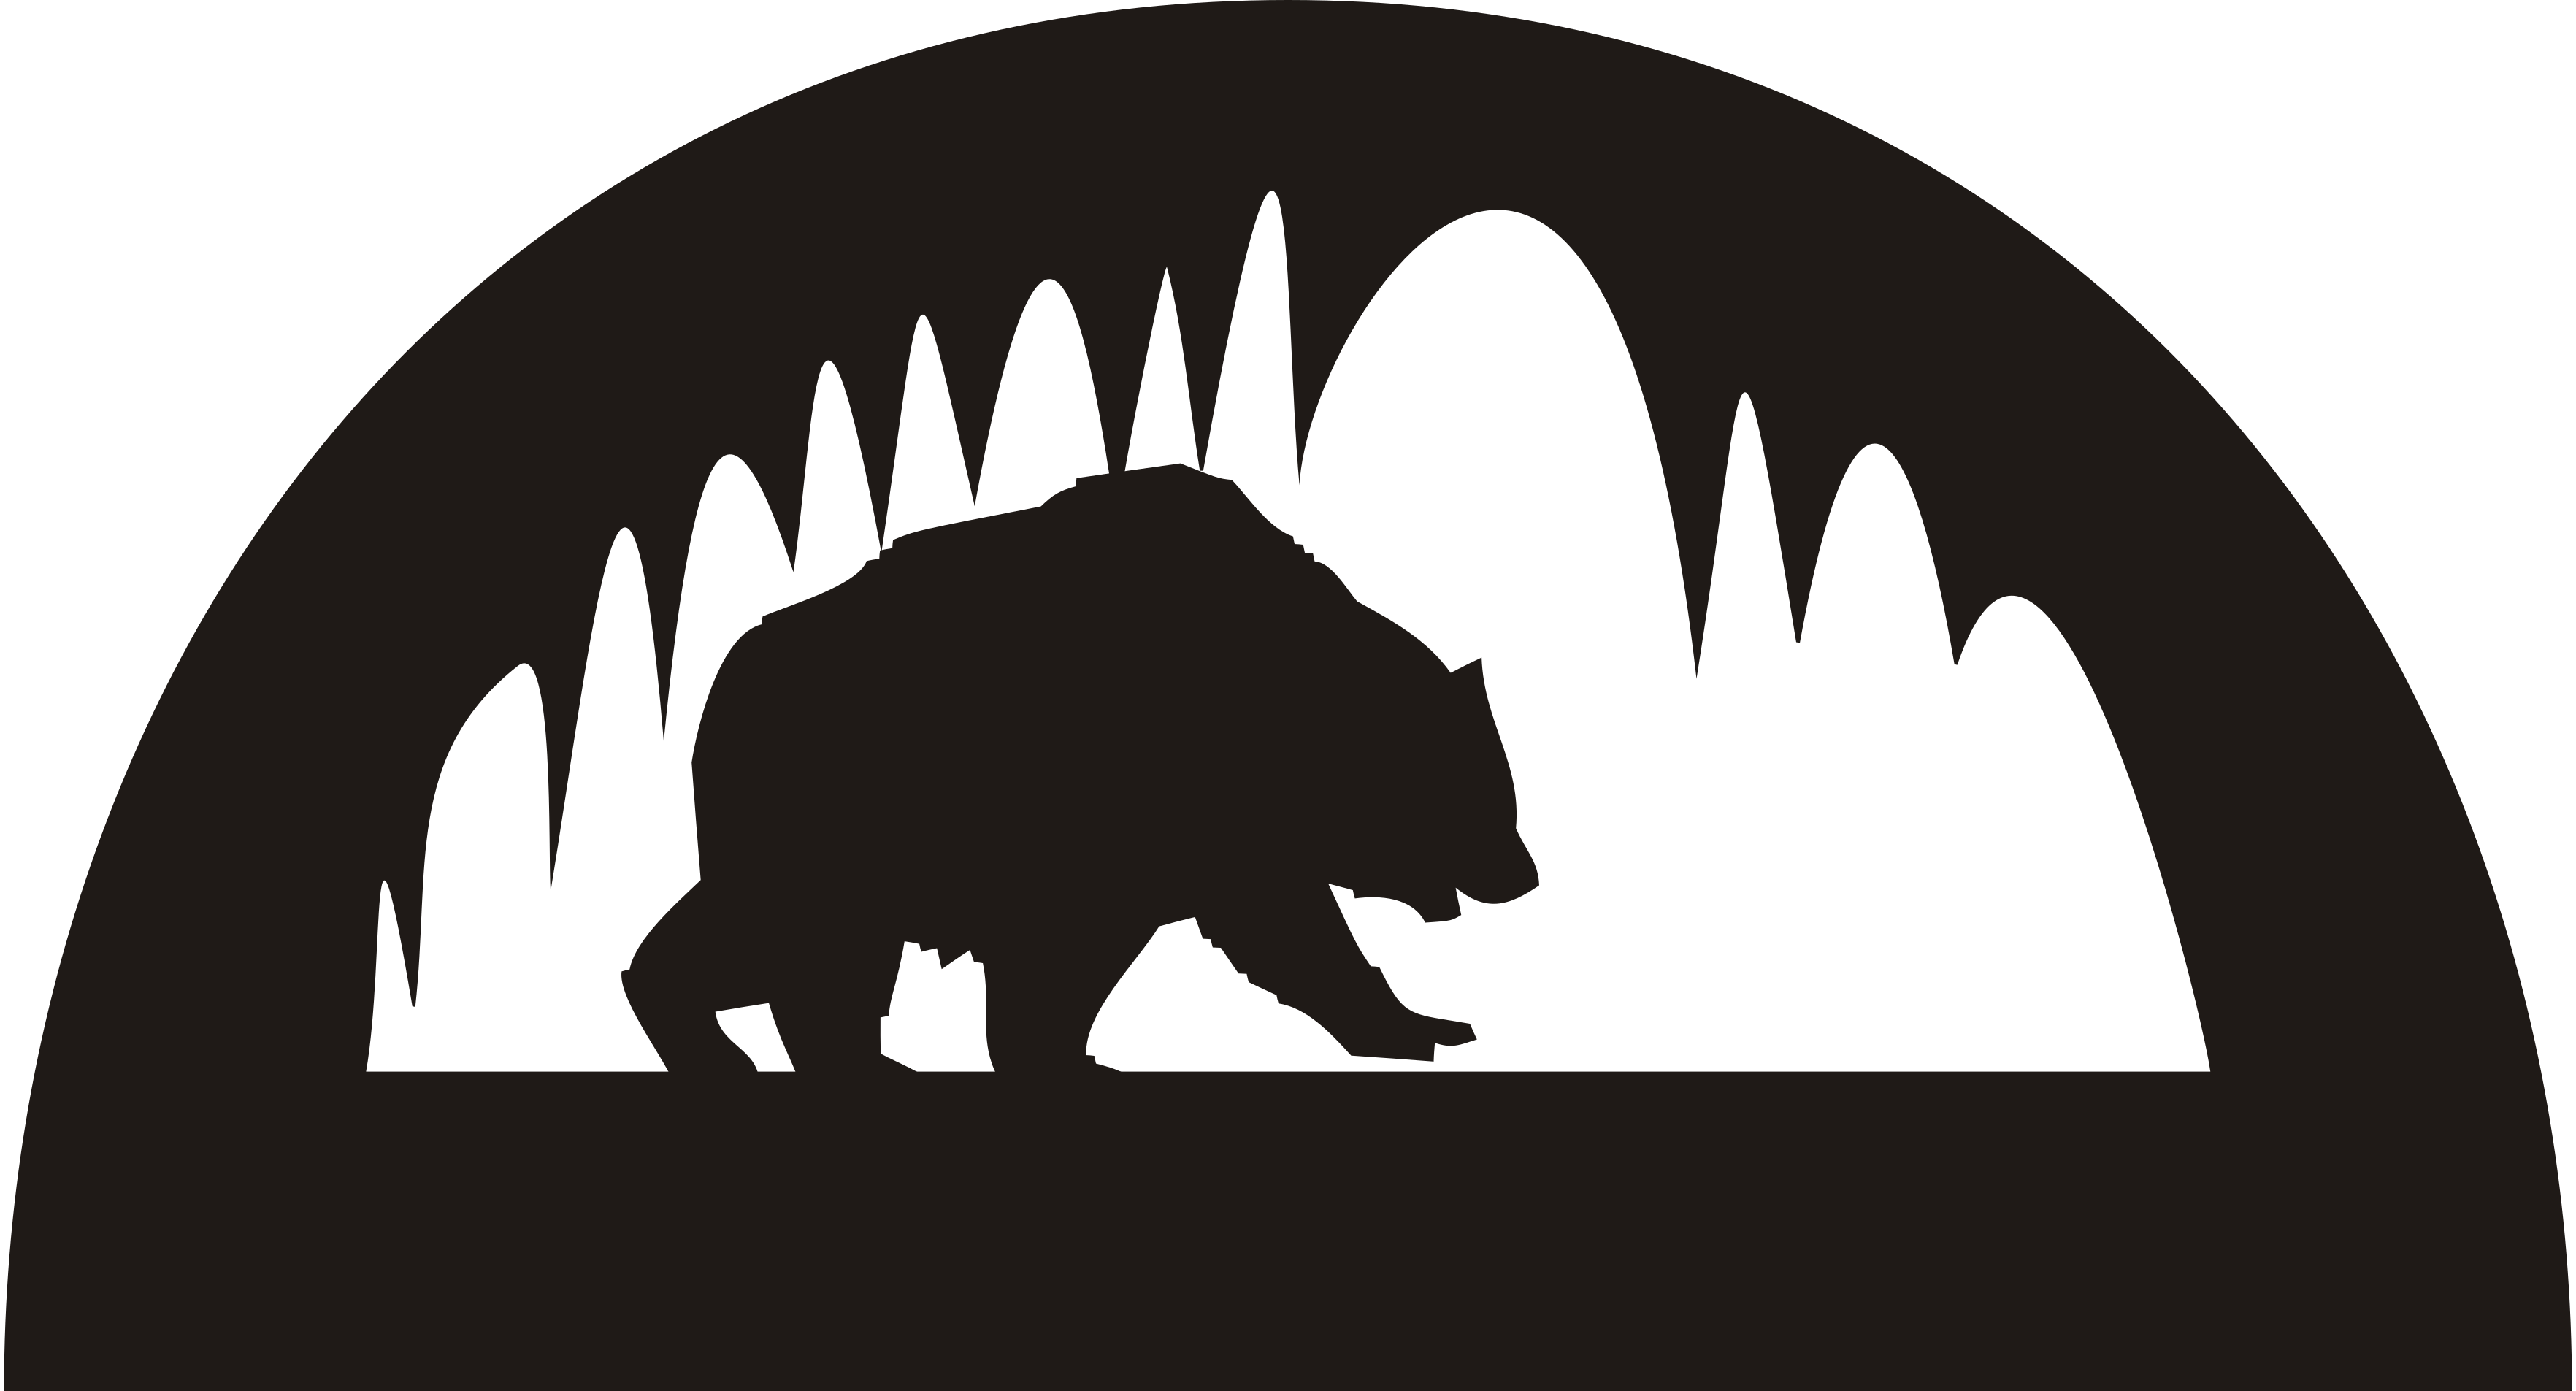 graphic freeuse File svg wikipedia filebear. Cave clipart bear cave.